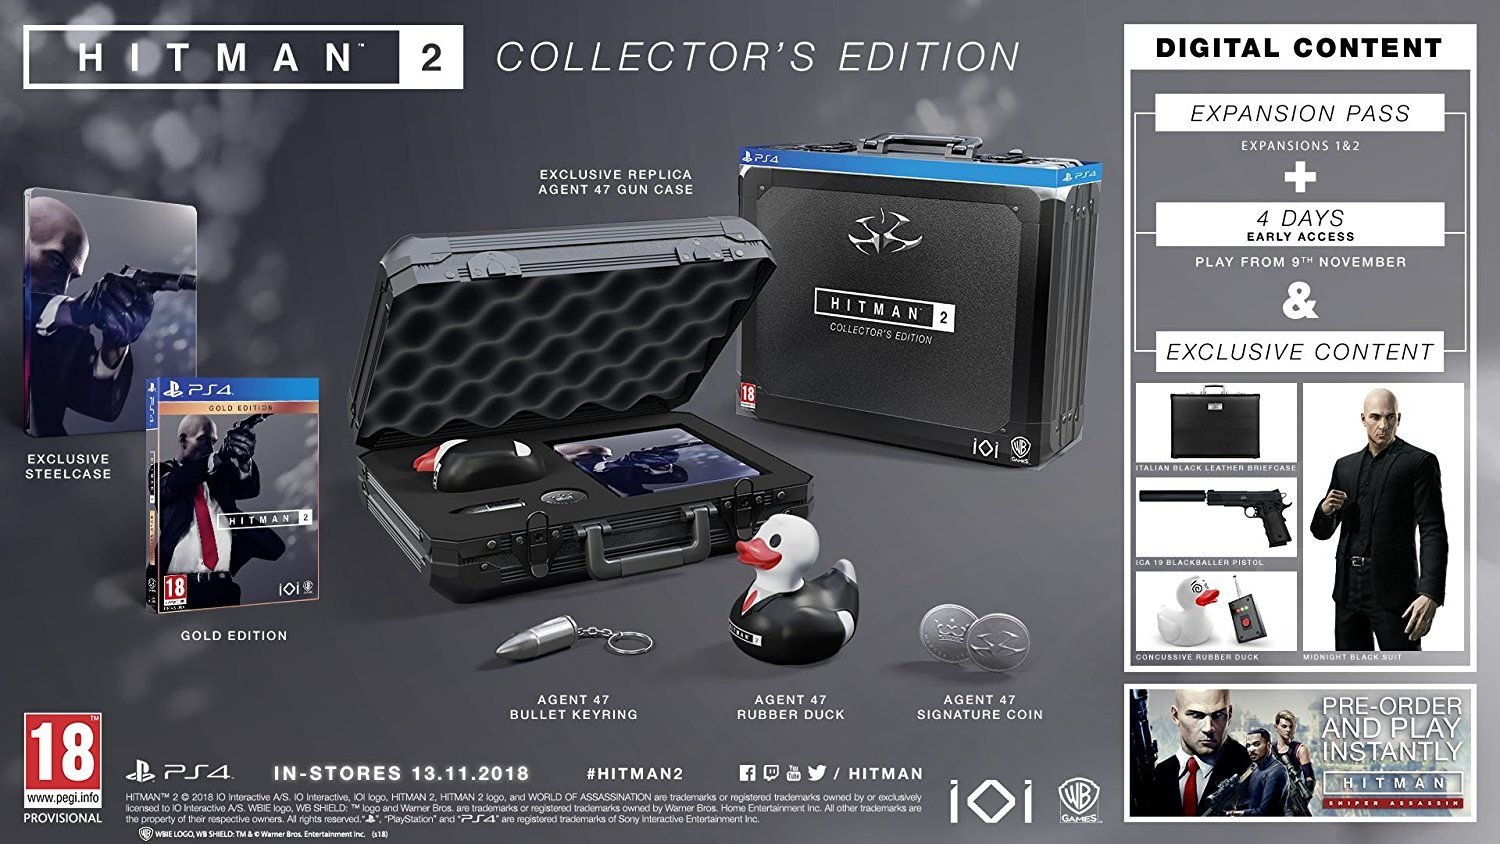 The Hitman 2 Collector's Edition packaging and bonuses.